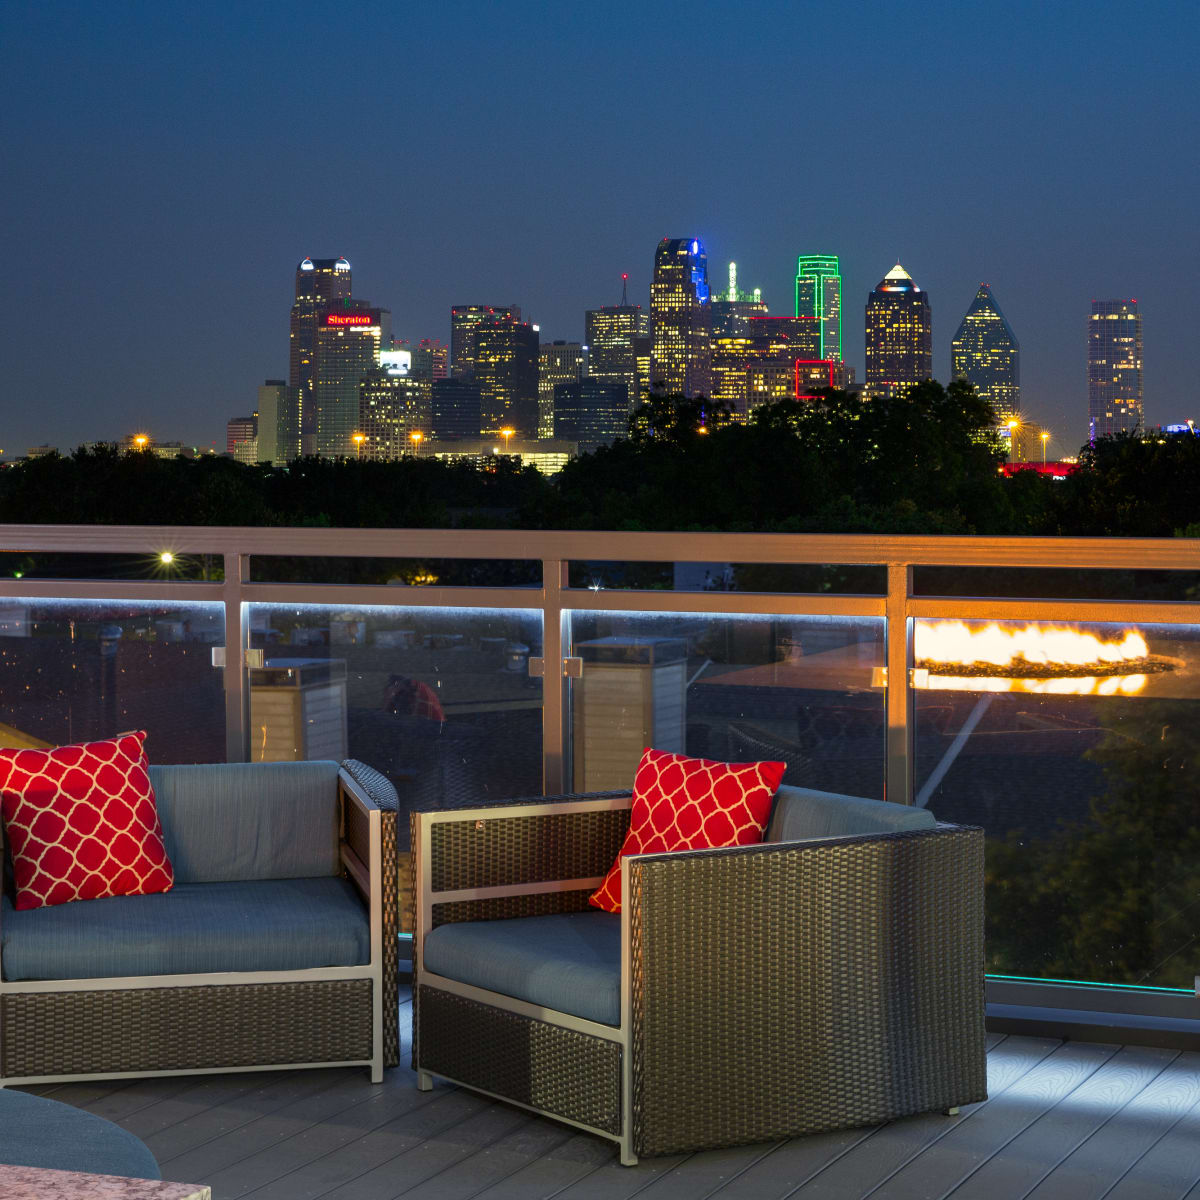 Strata Dallas roof deck